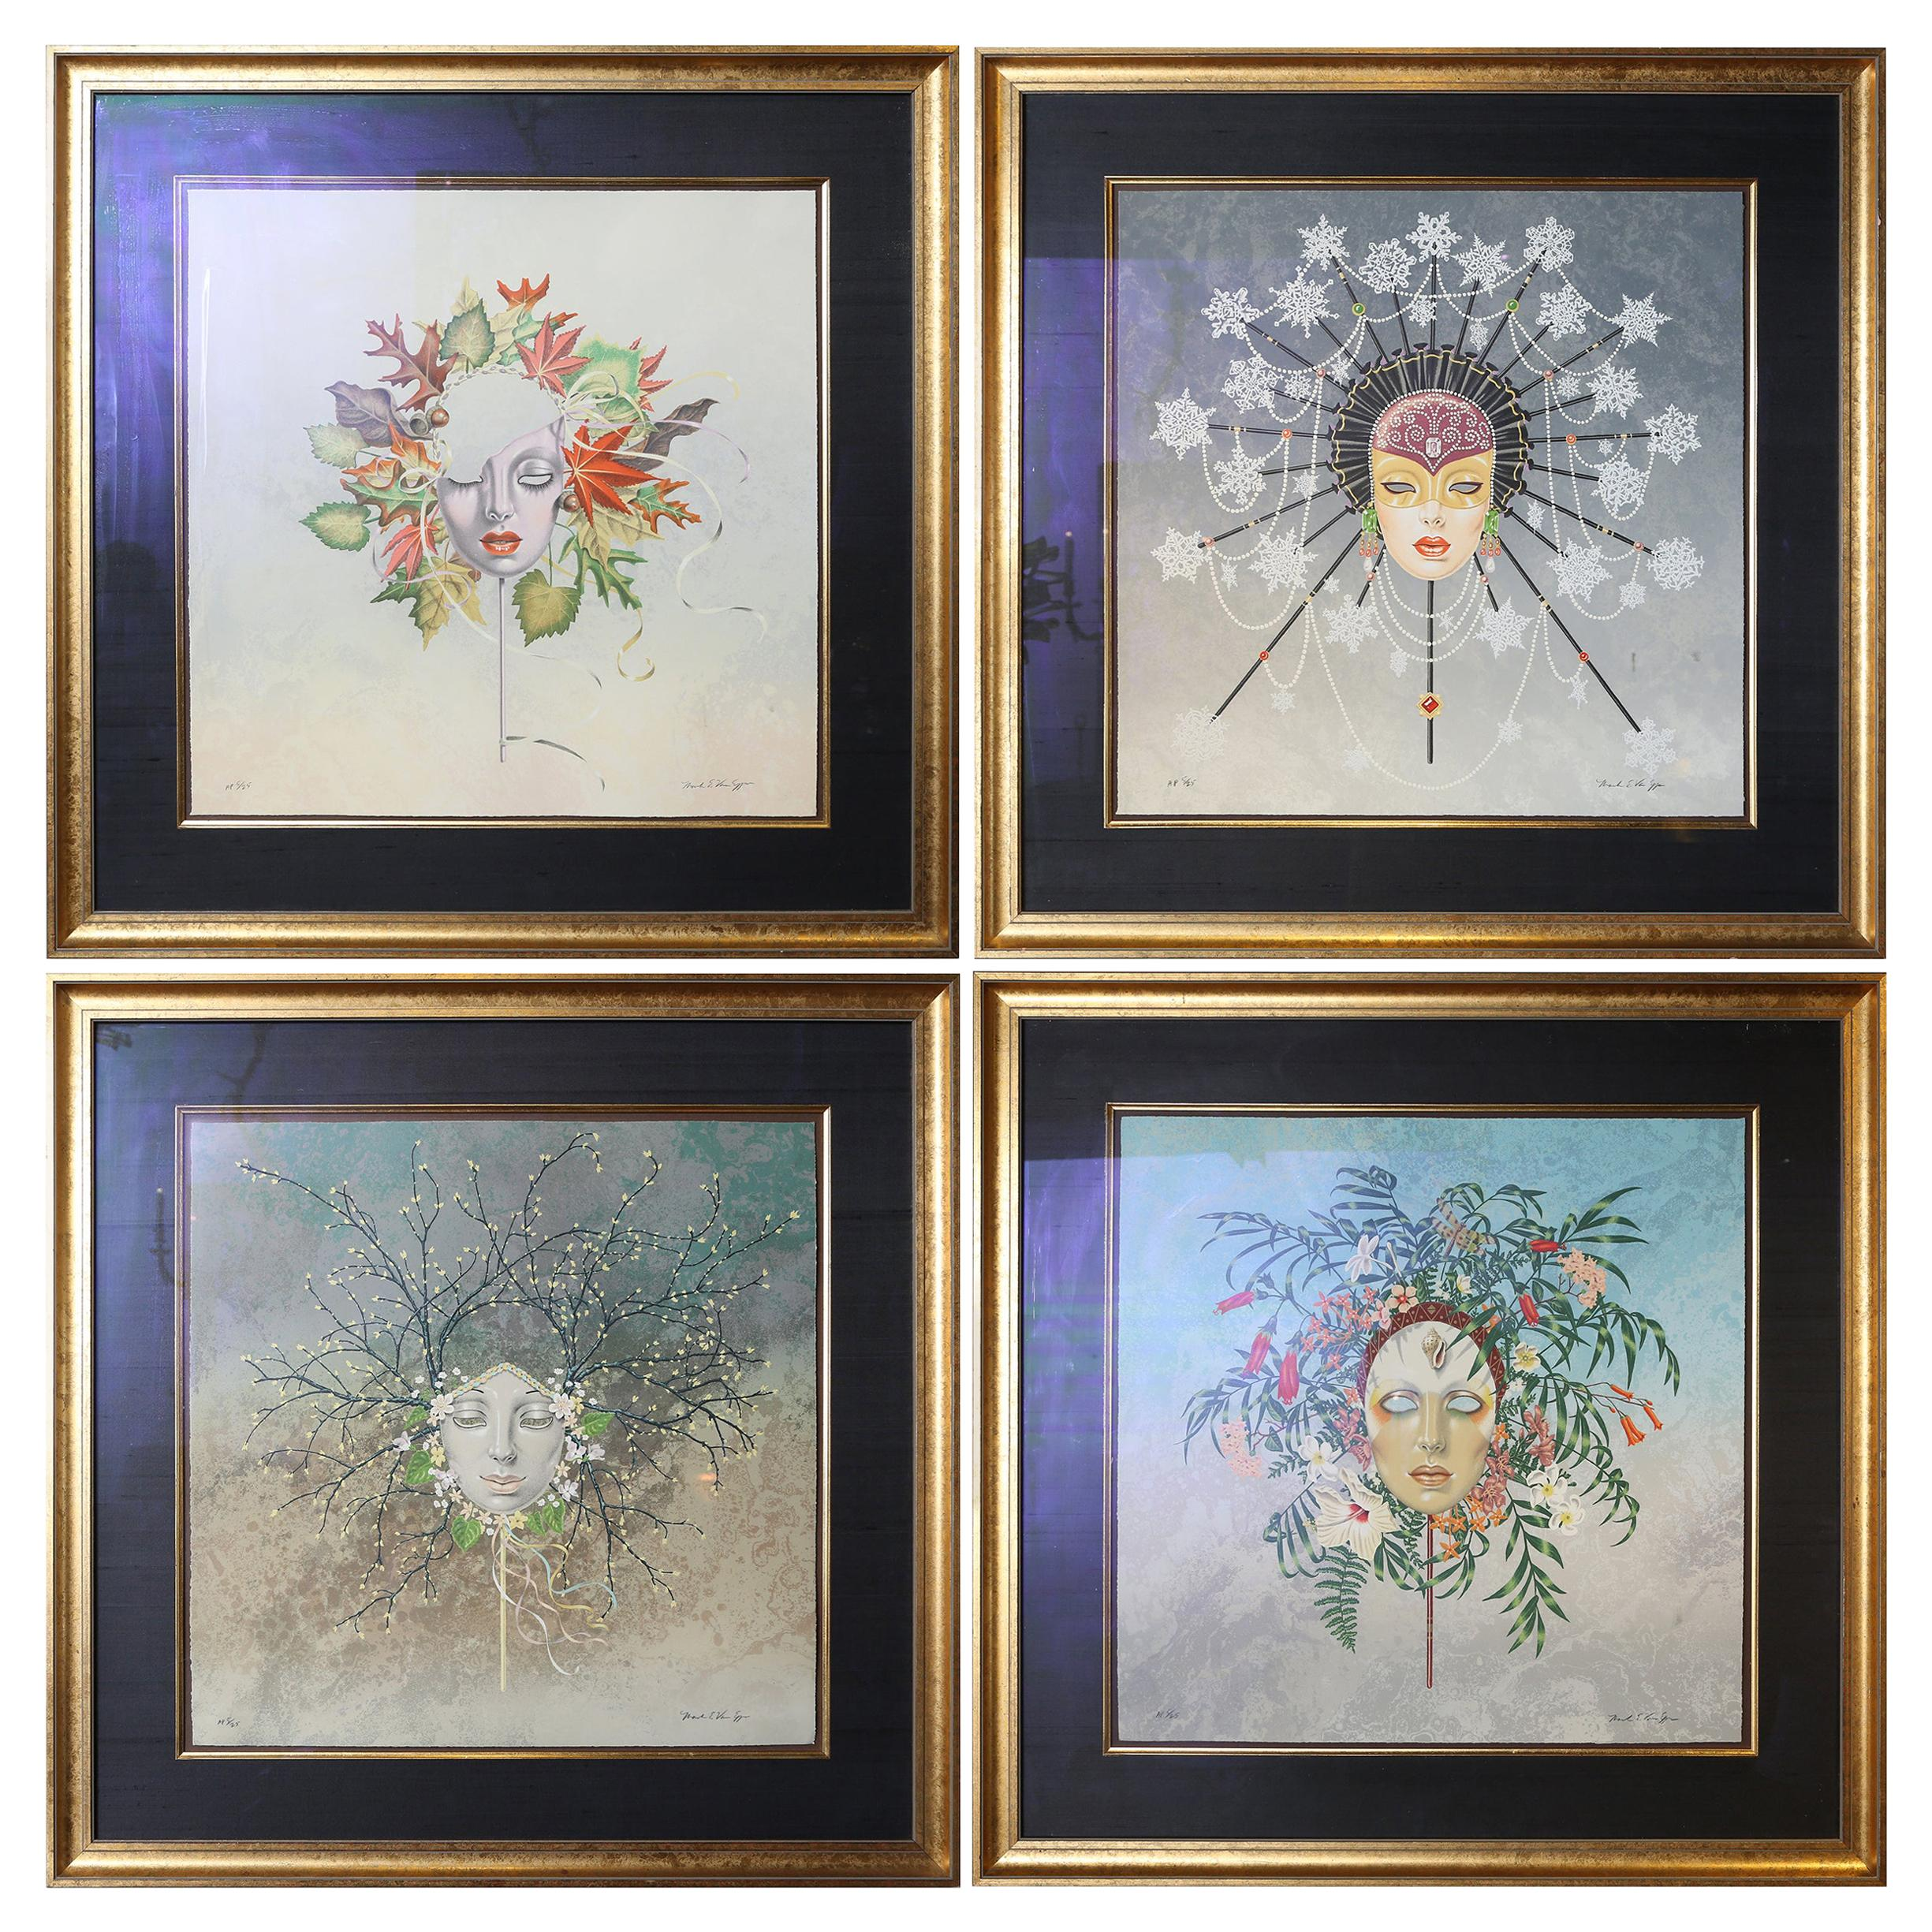 Set of Four Limited Edition Lithographs by Mark Van Epps